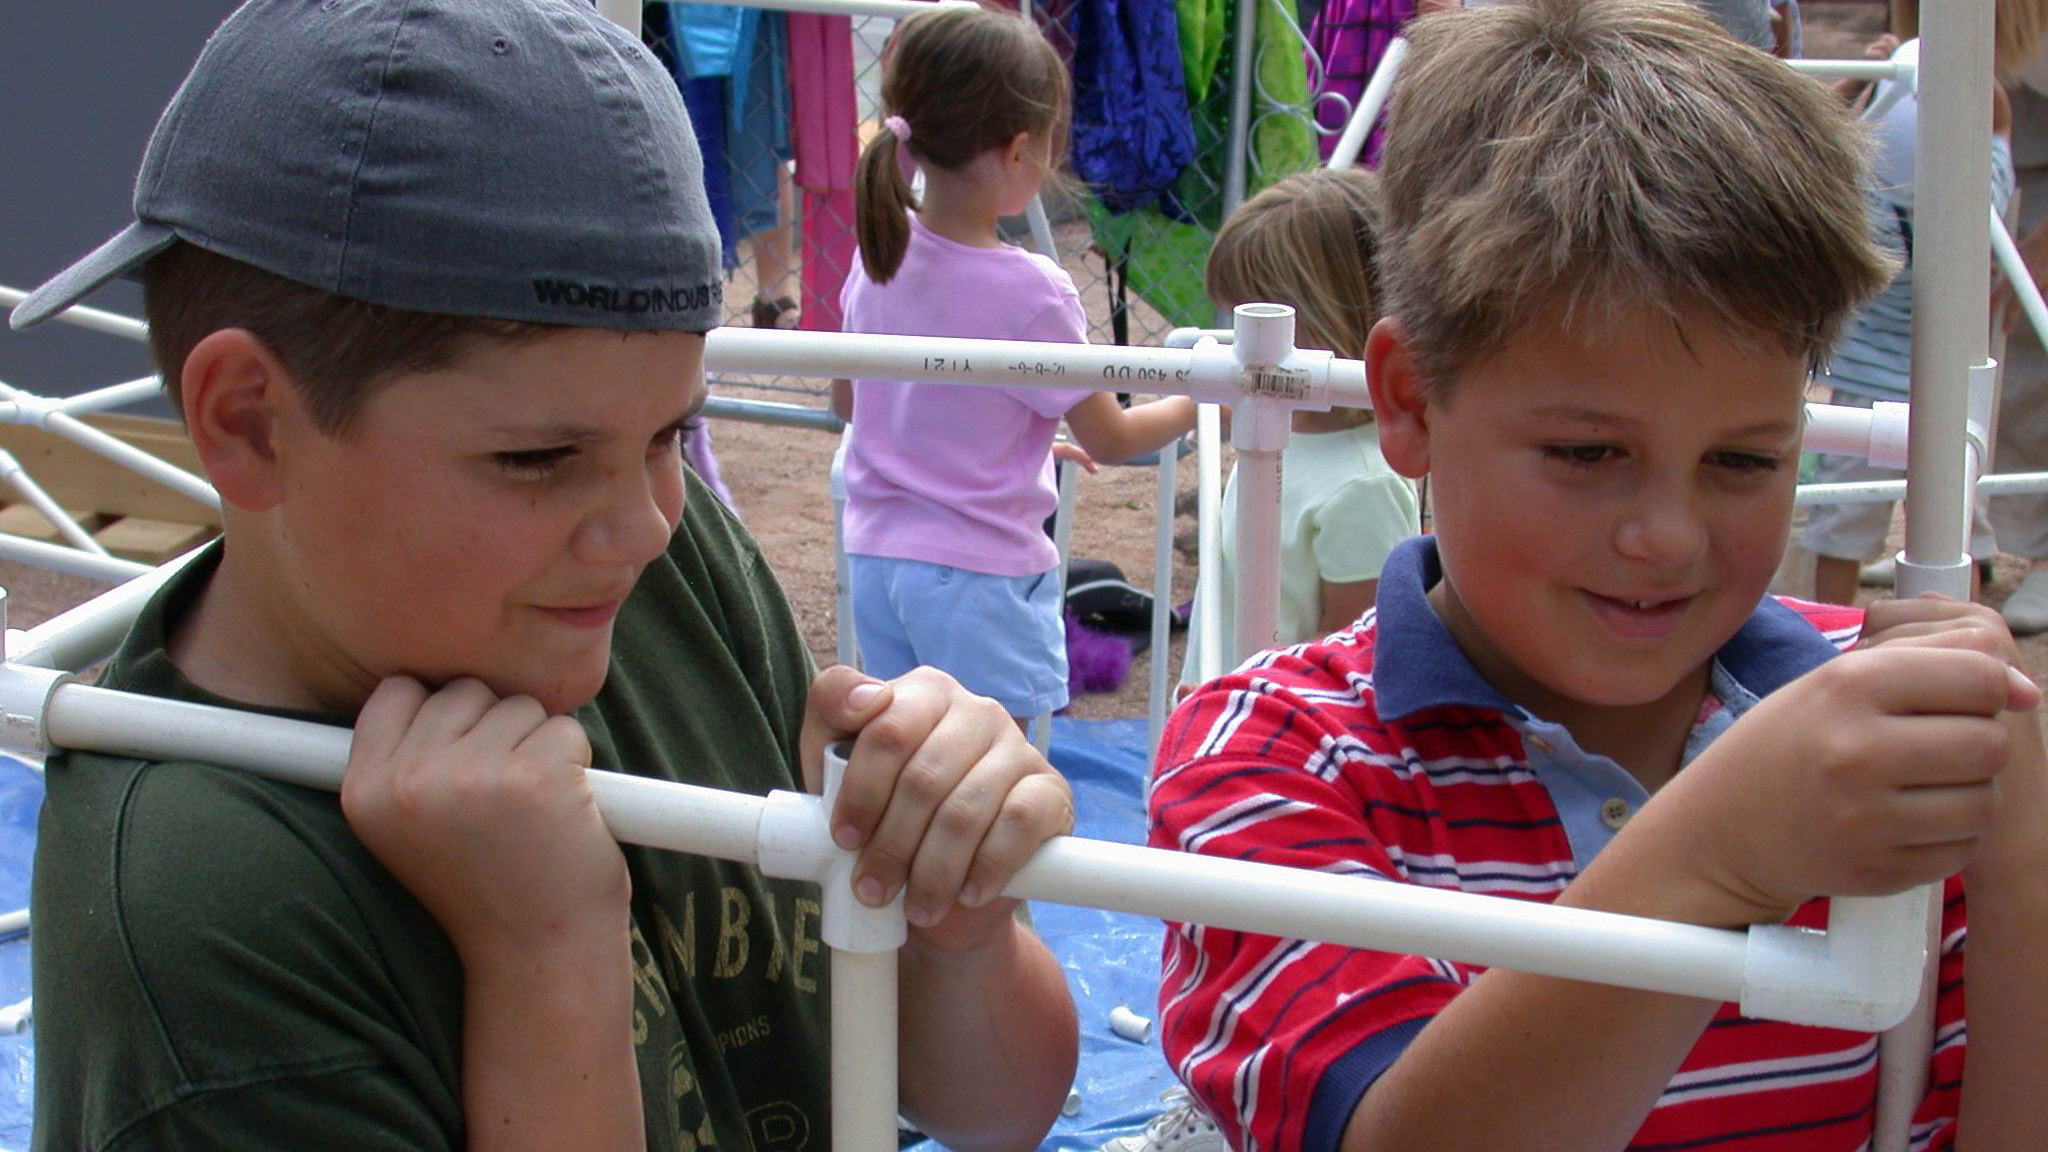 Two young kids working with PVC pipe.